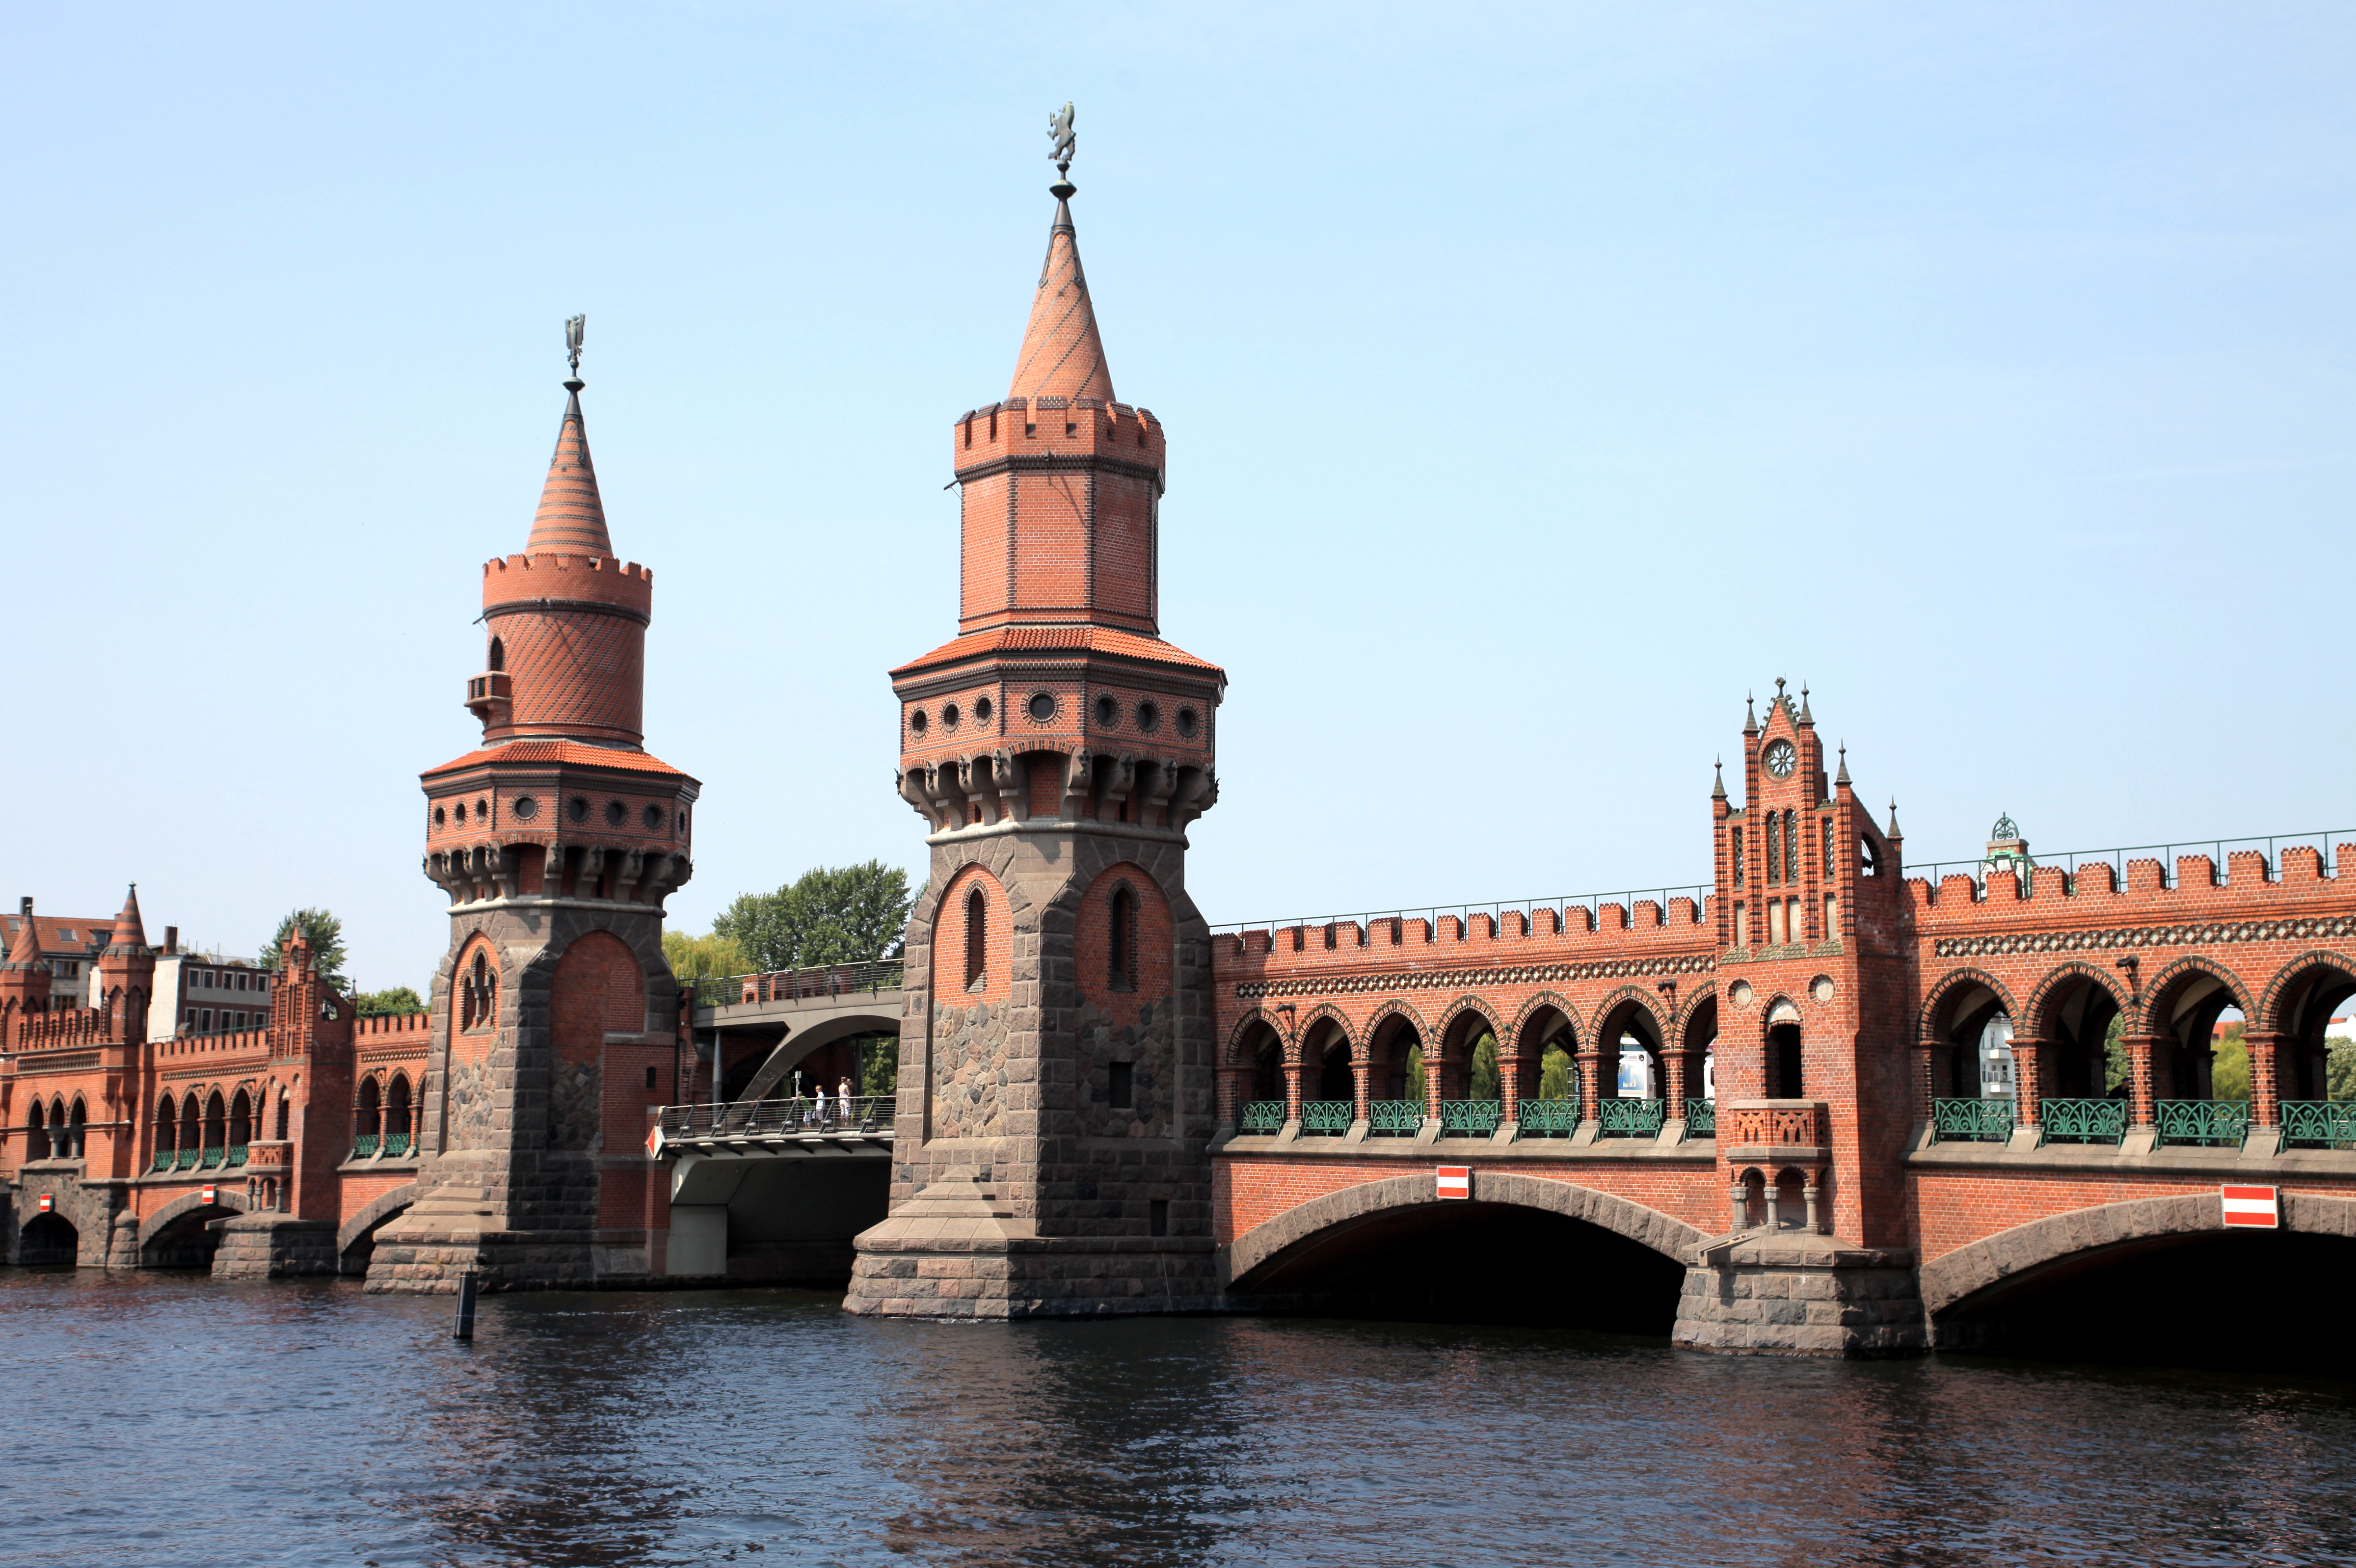 Bridge Oberbaumbruecke in Berlin